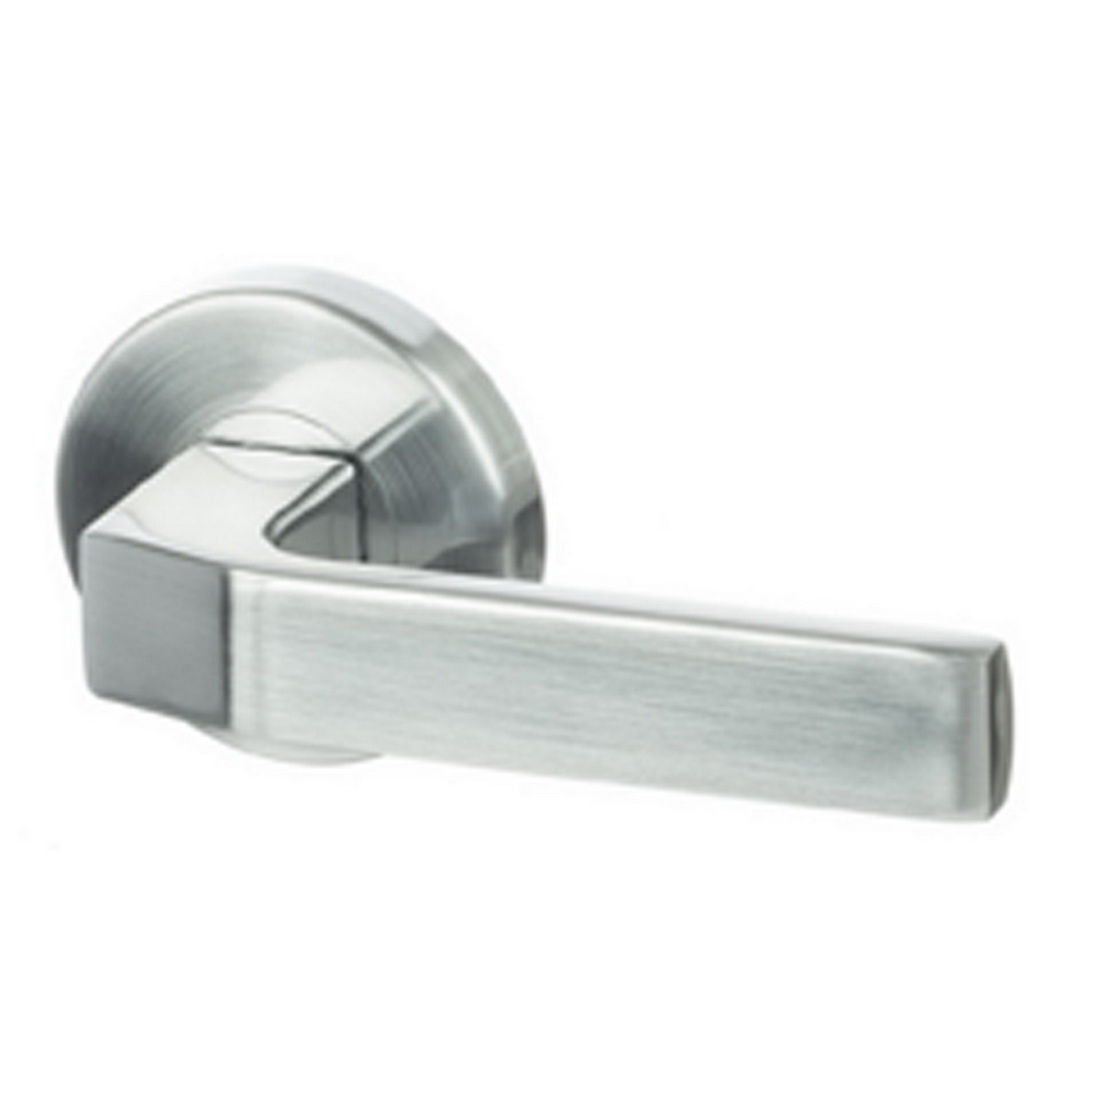 S Range Sienna Lever Handle Privacy Set Brushed Satin Chrome